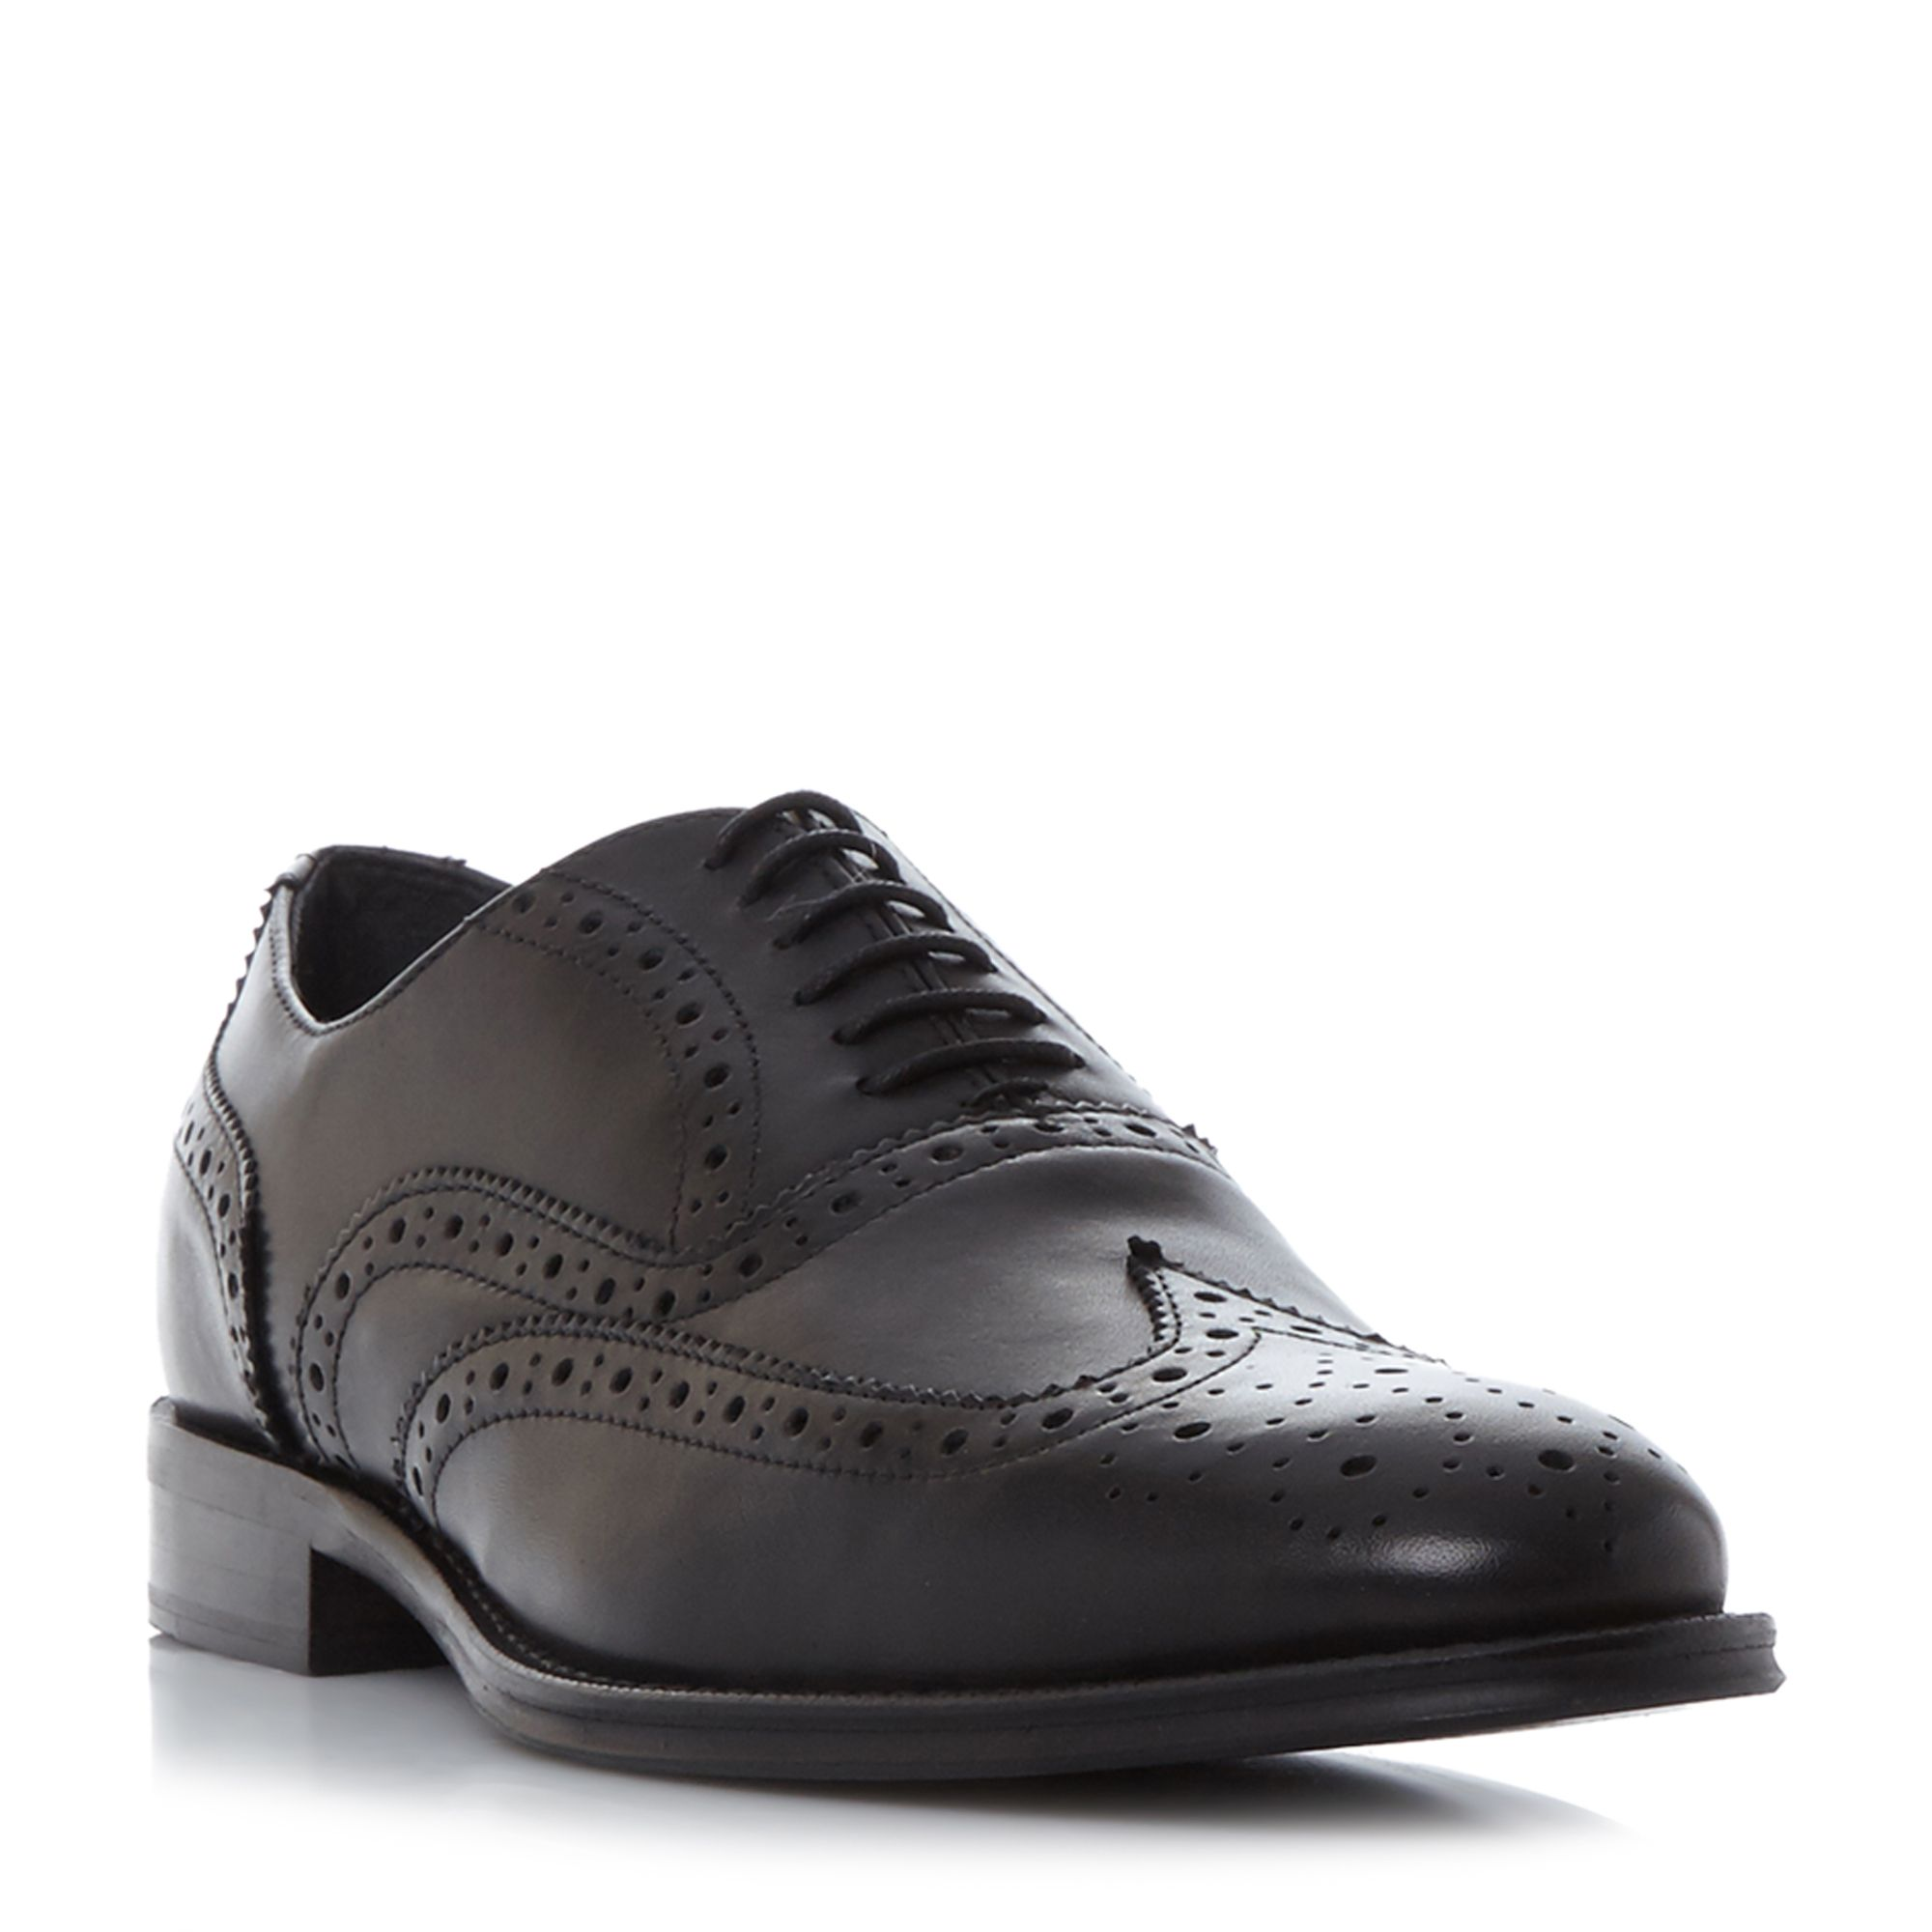 Roland Cartier Roland Cartier Radleigh traditional brogue shoes, Black